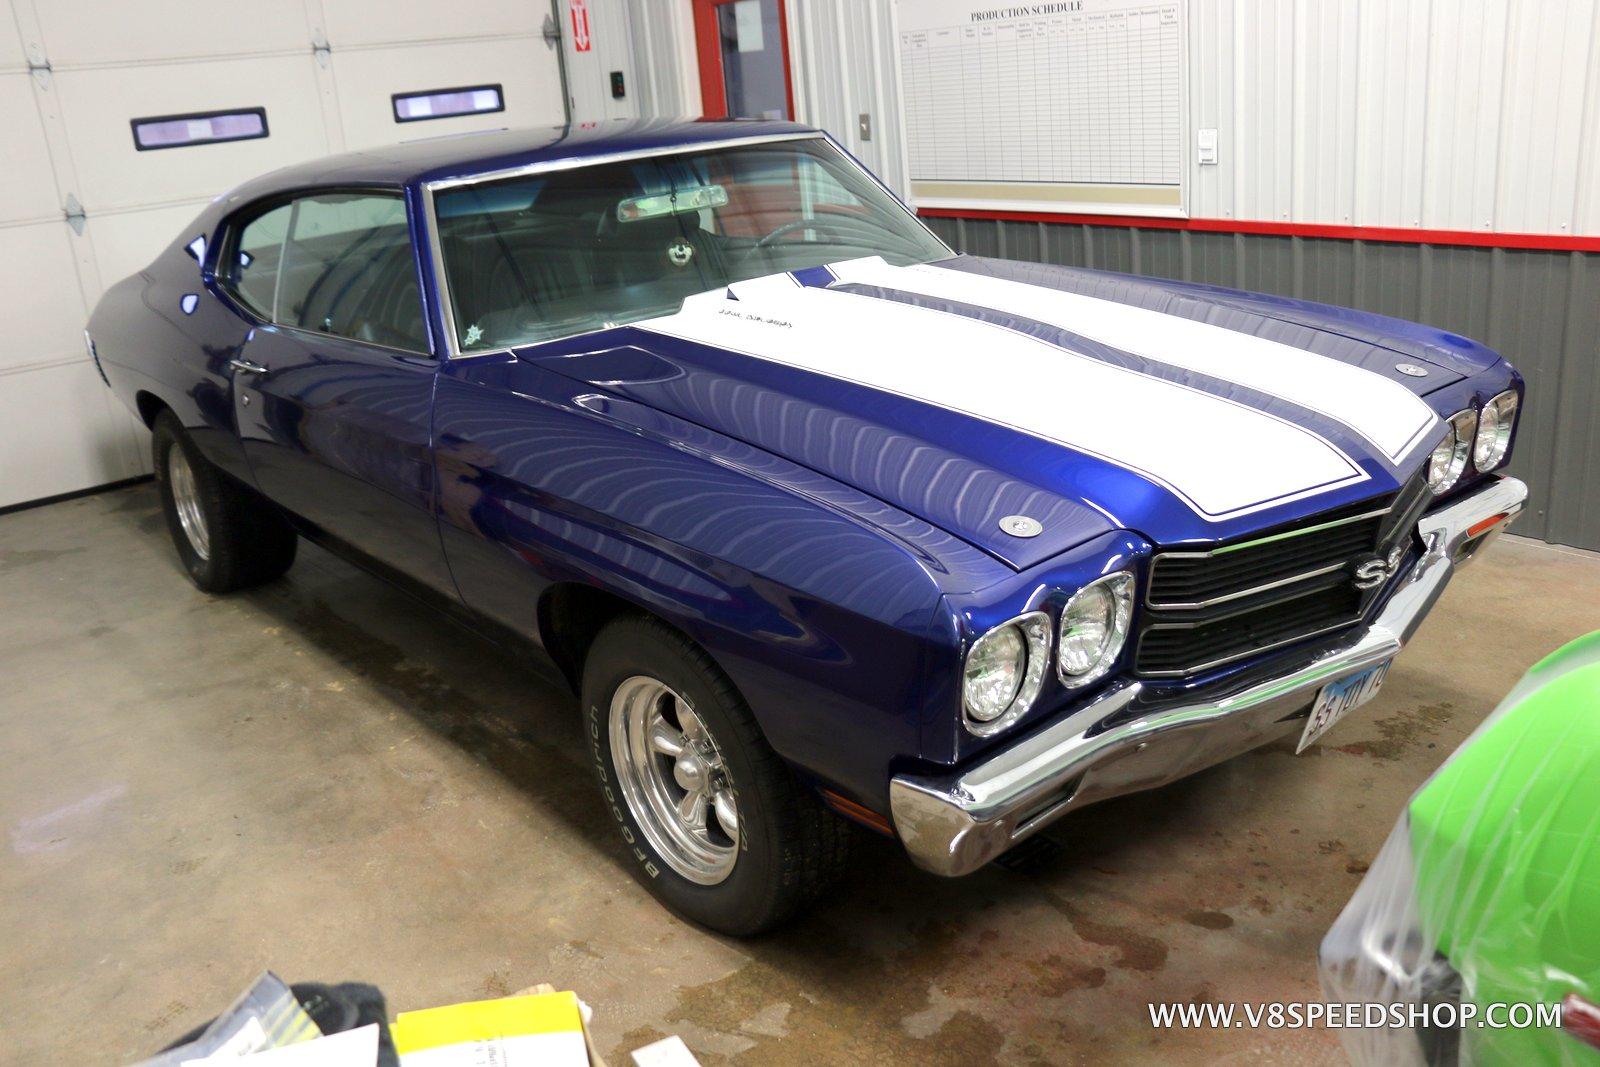 1970 Chevrolet Chevelle Maintenance and Upgrades at the V8 Speed and Resto Shop